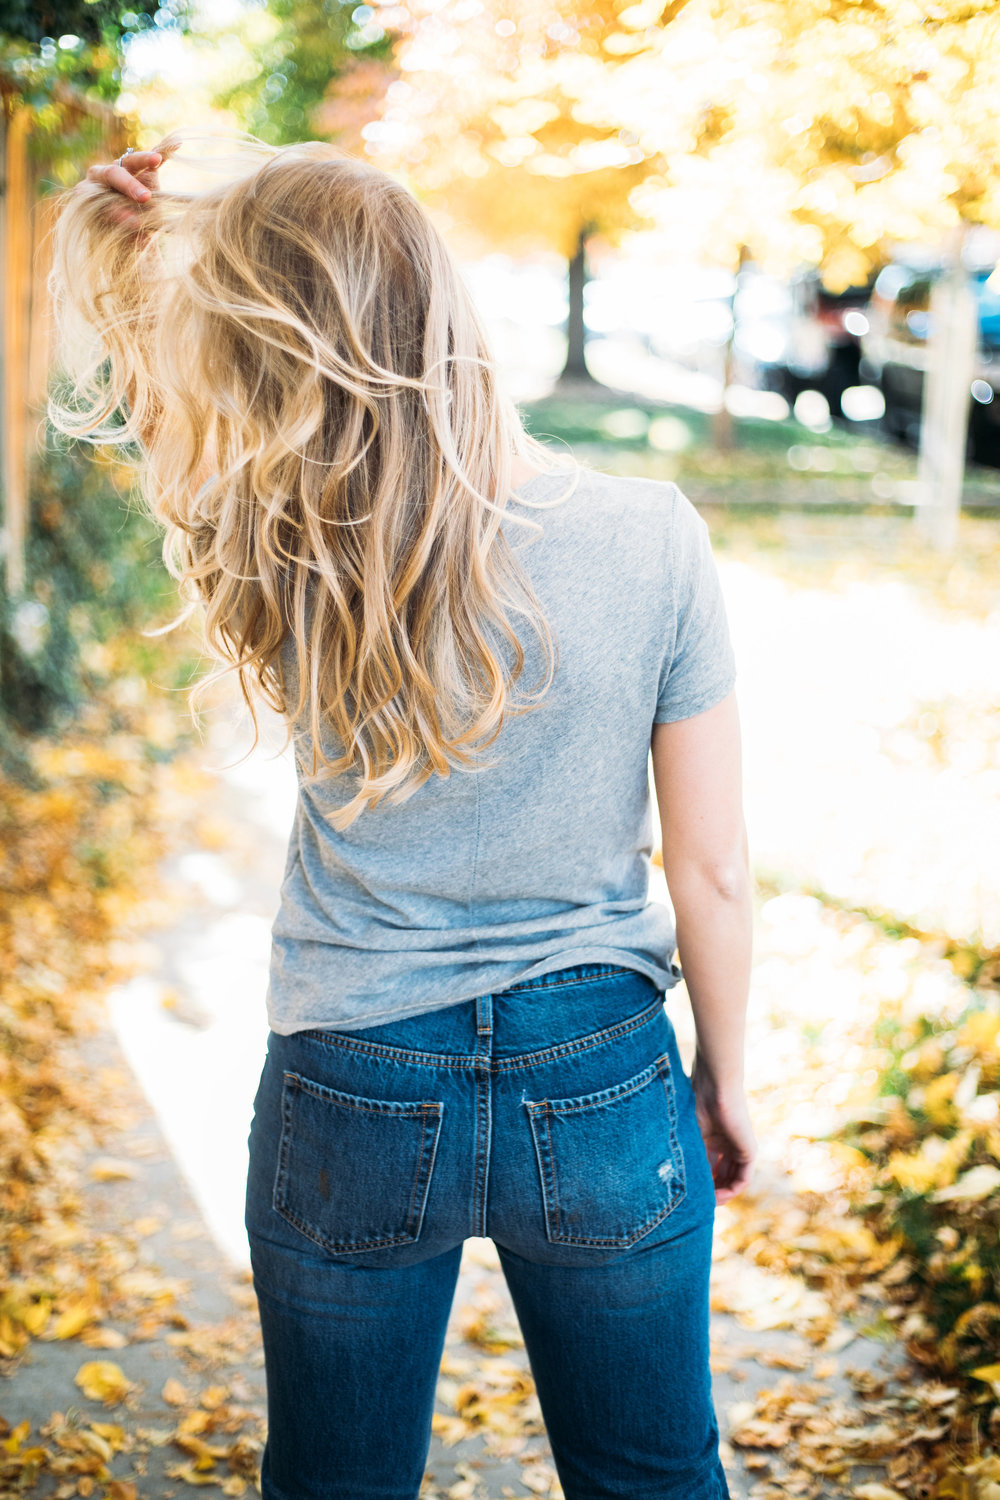 Denver Personal Stylist - 10 Reasons to Try a High-Waisted Jean